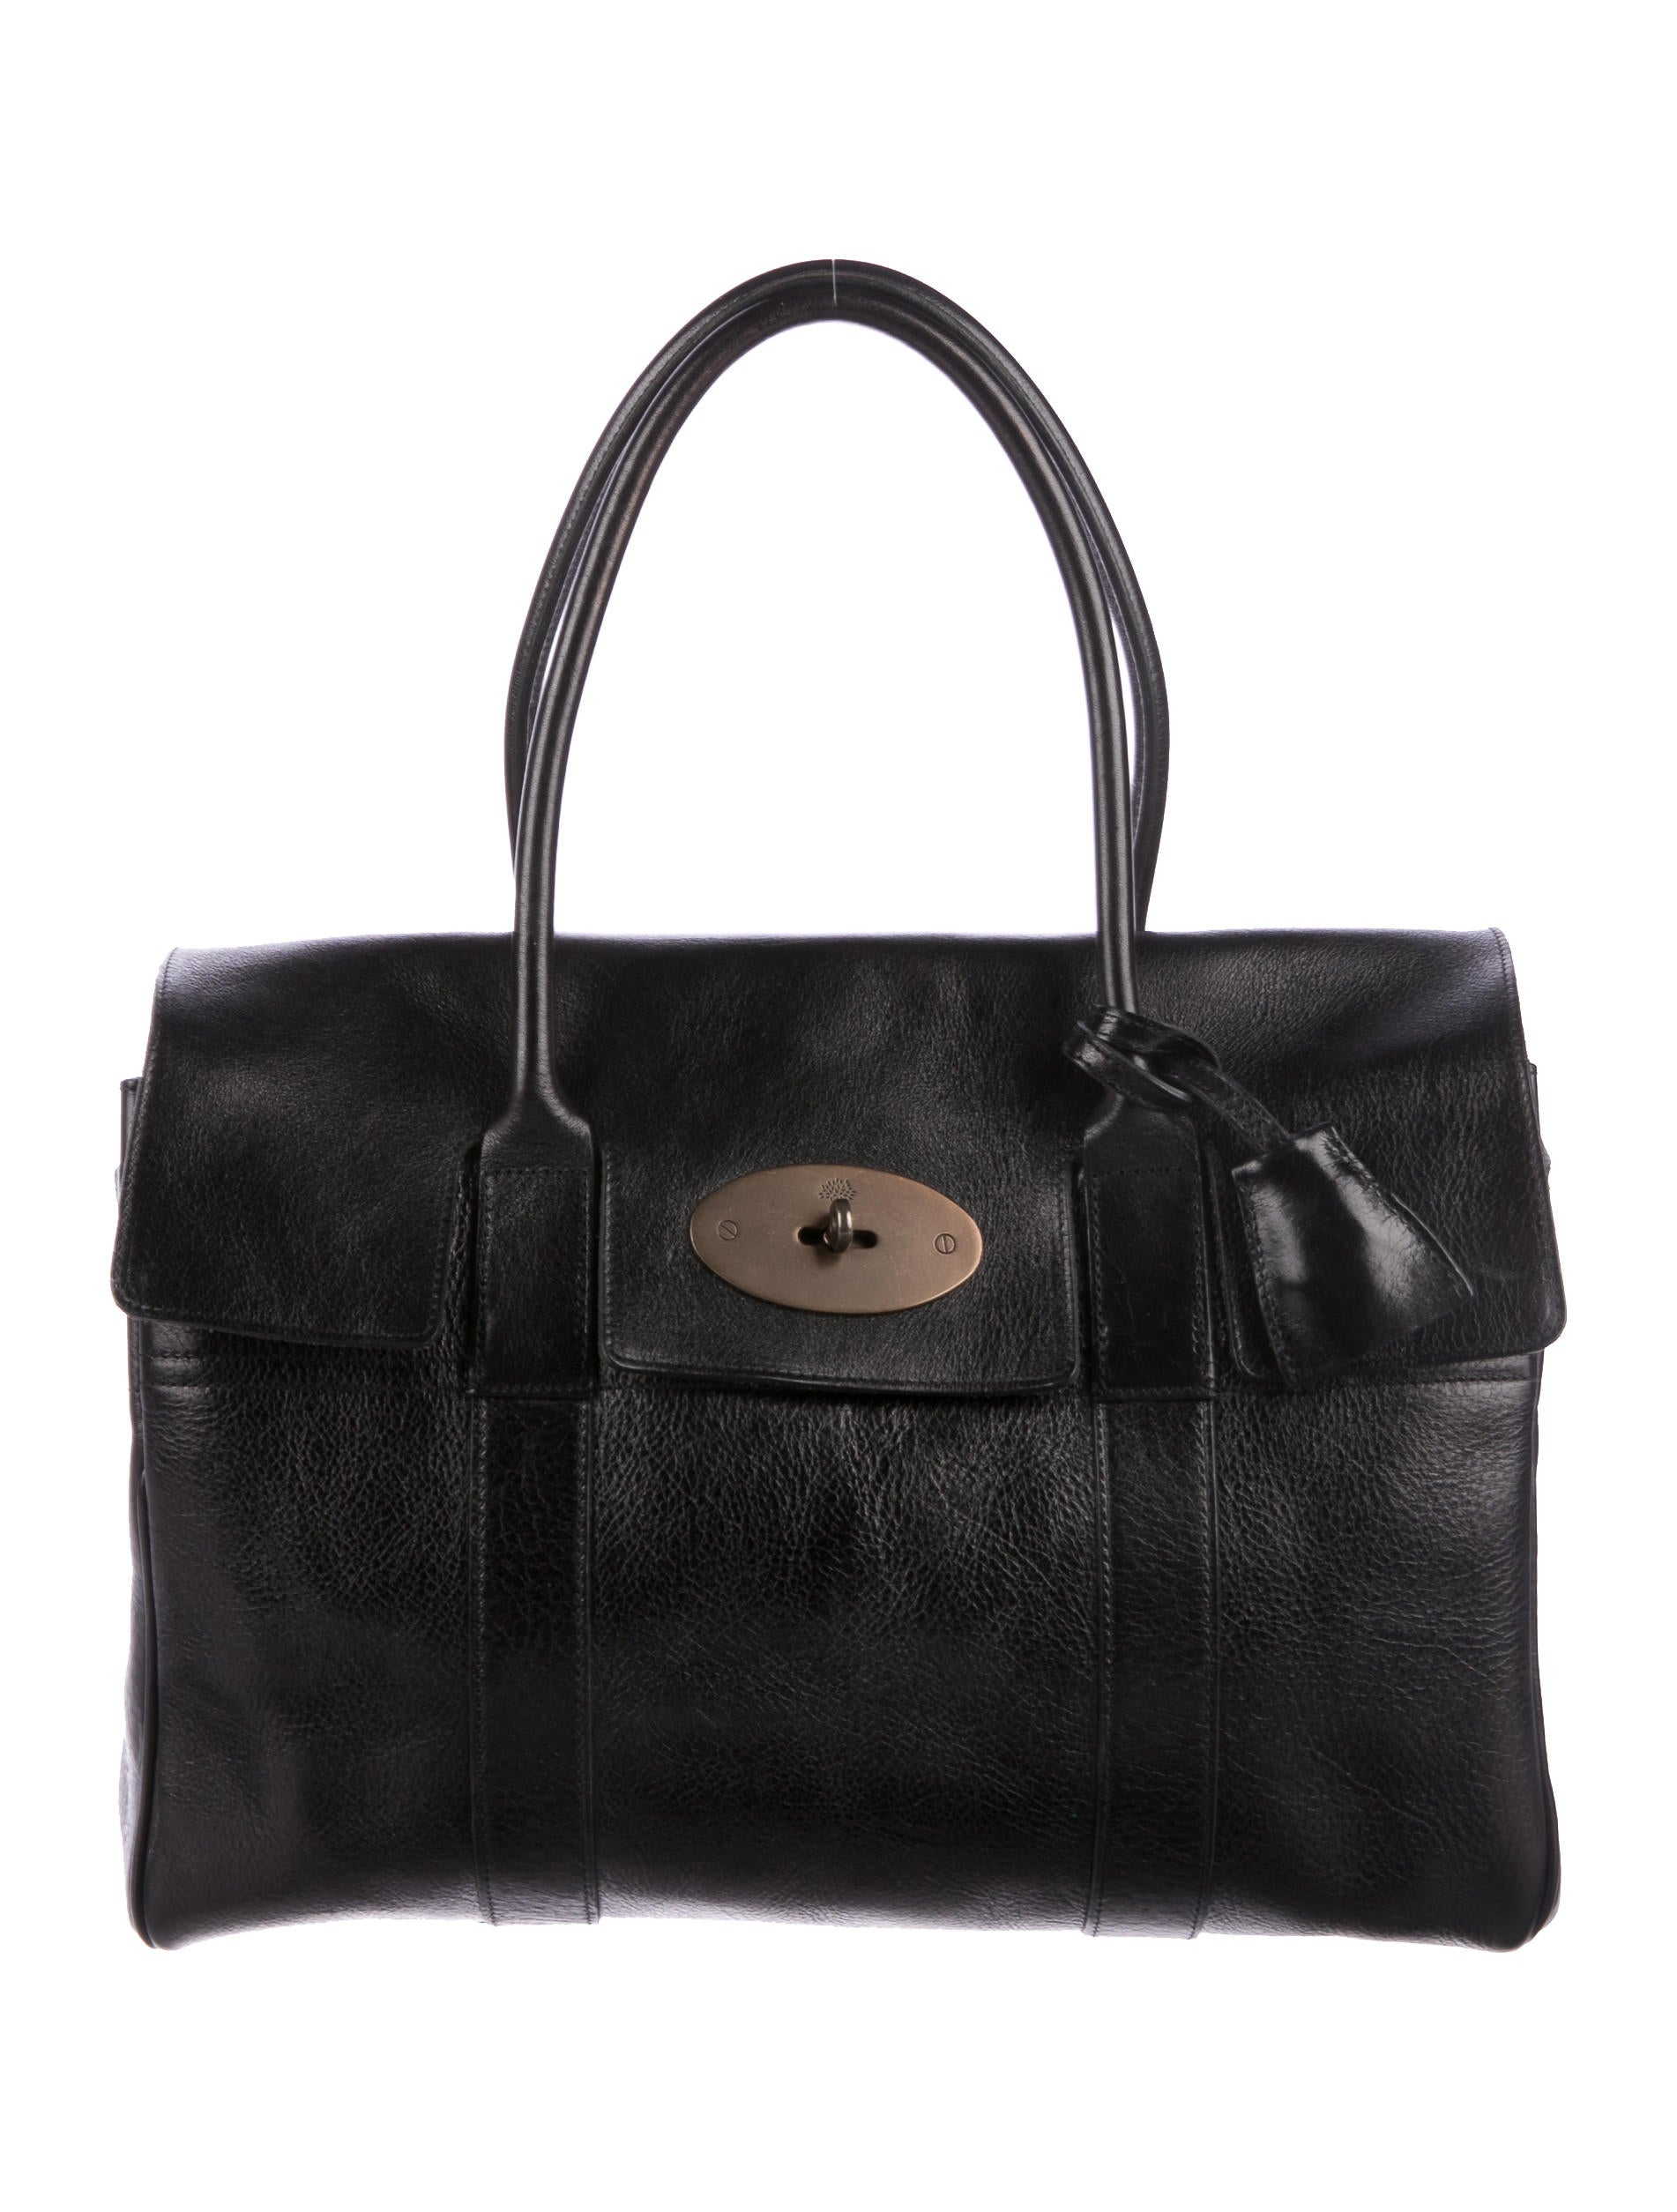 Mulberry bayswater antique glace bag handbags mul23180 for The bayswater